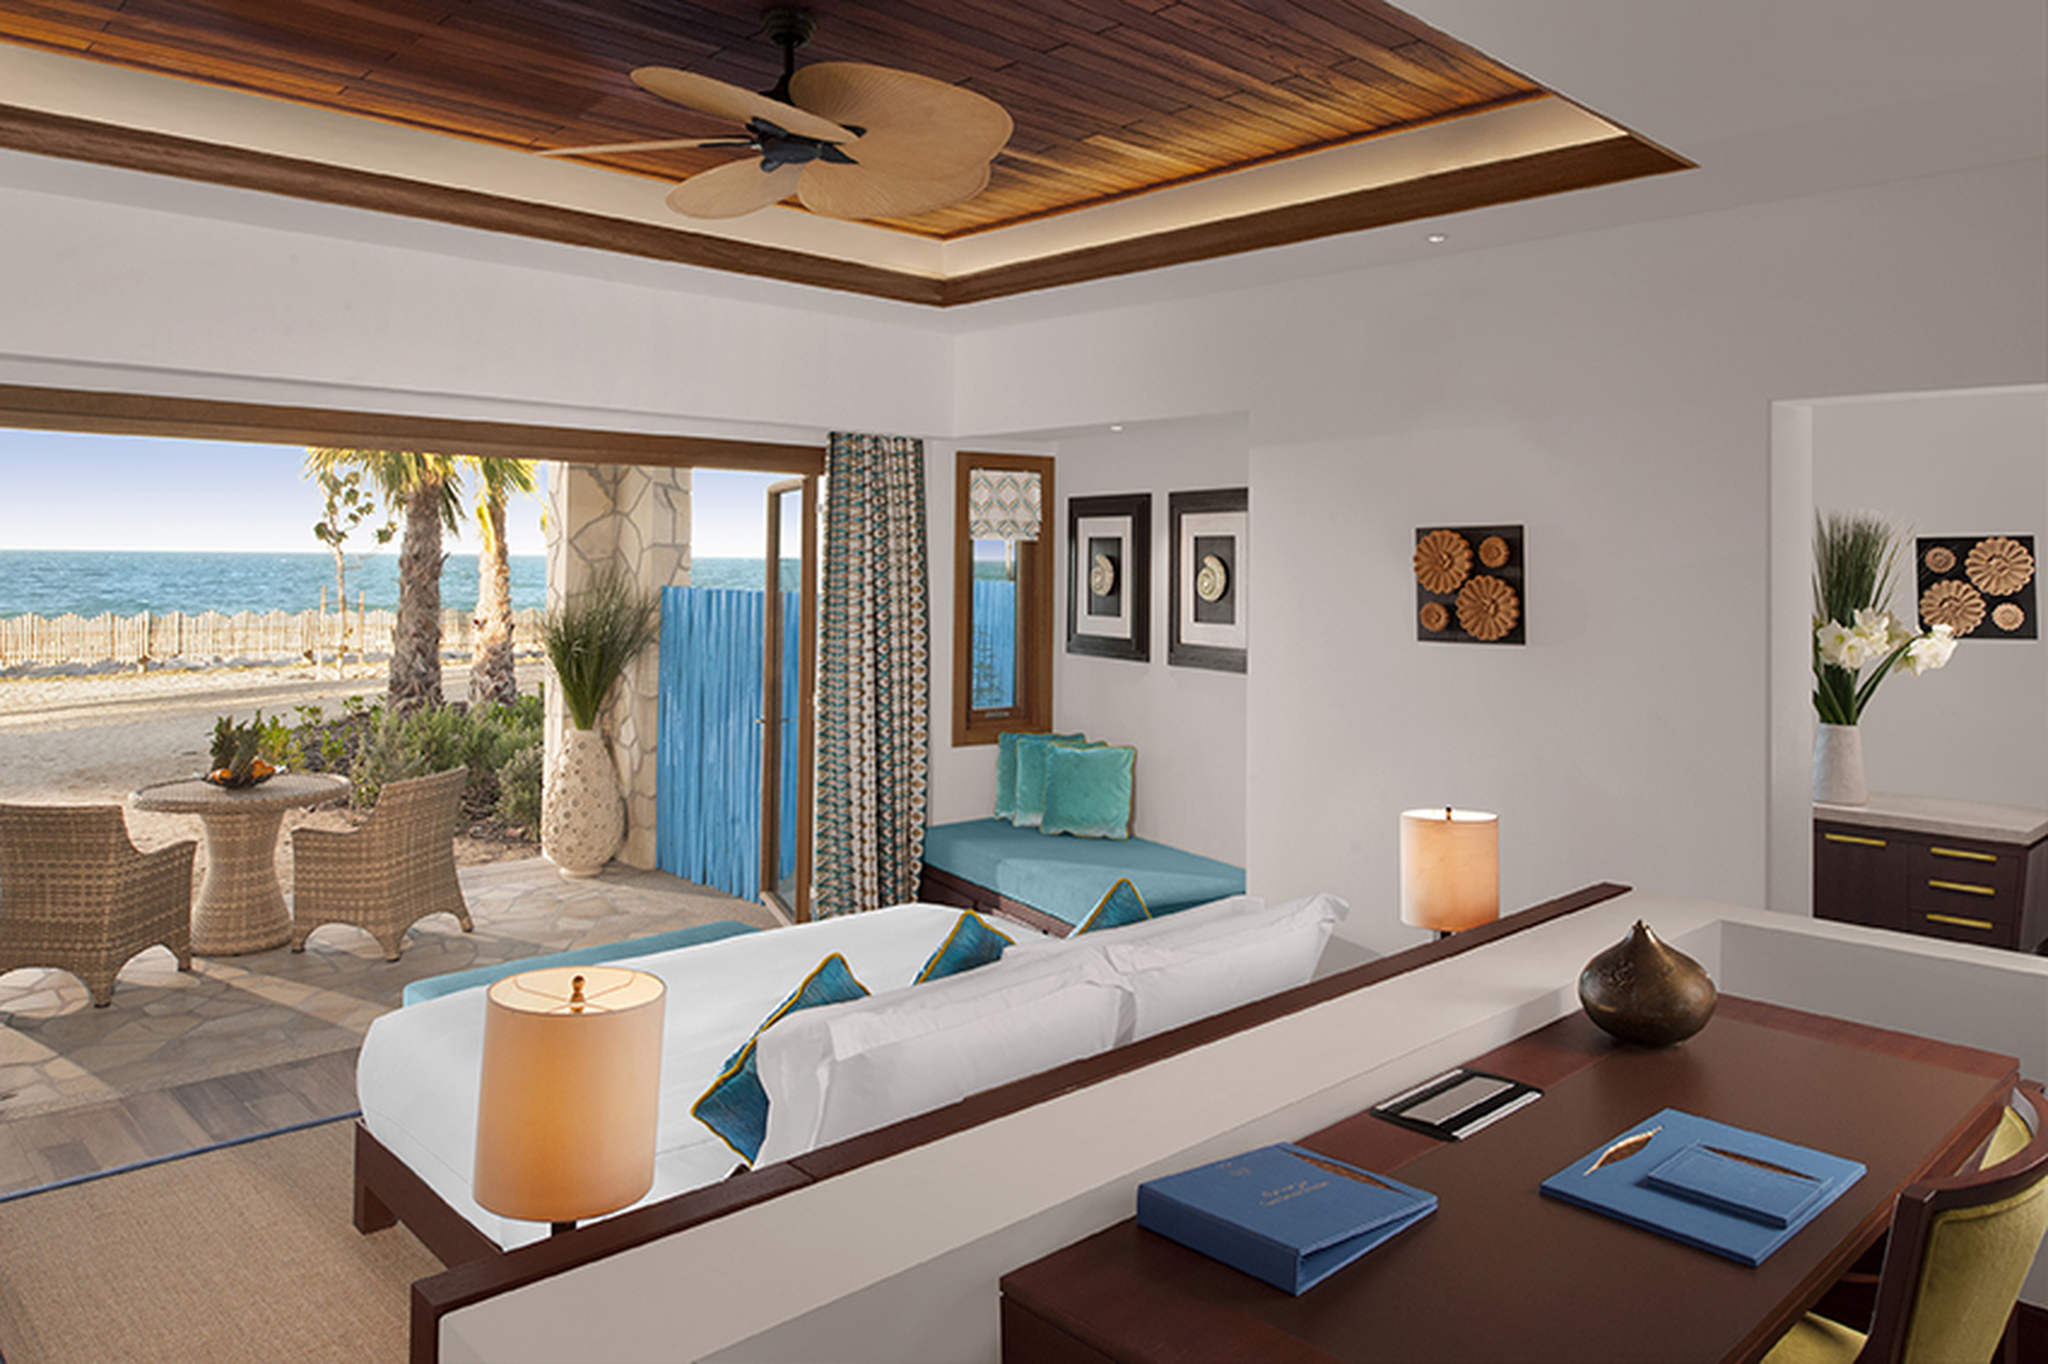 Banana Island Resort by Anantara, Katar